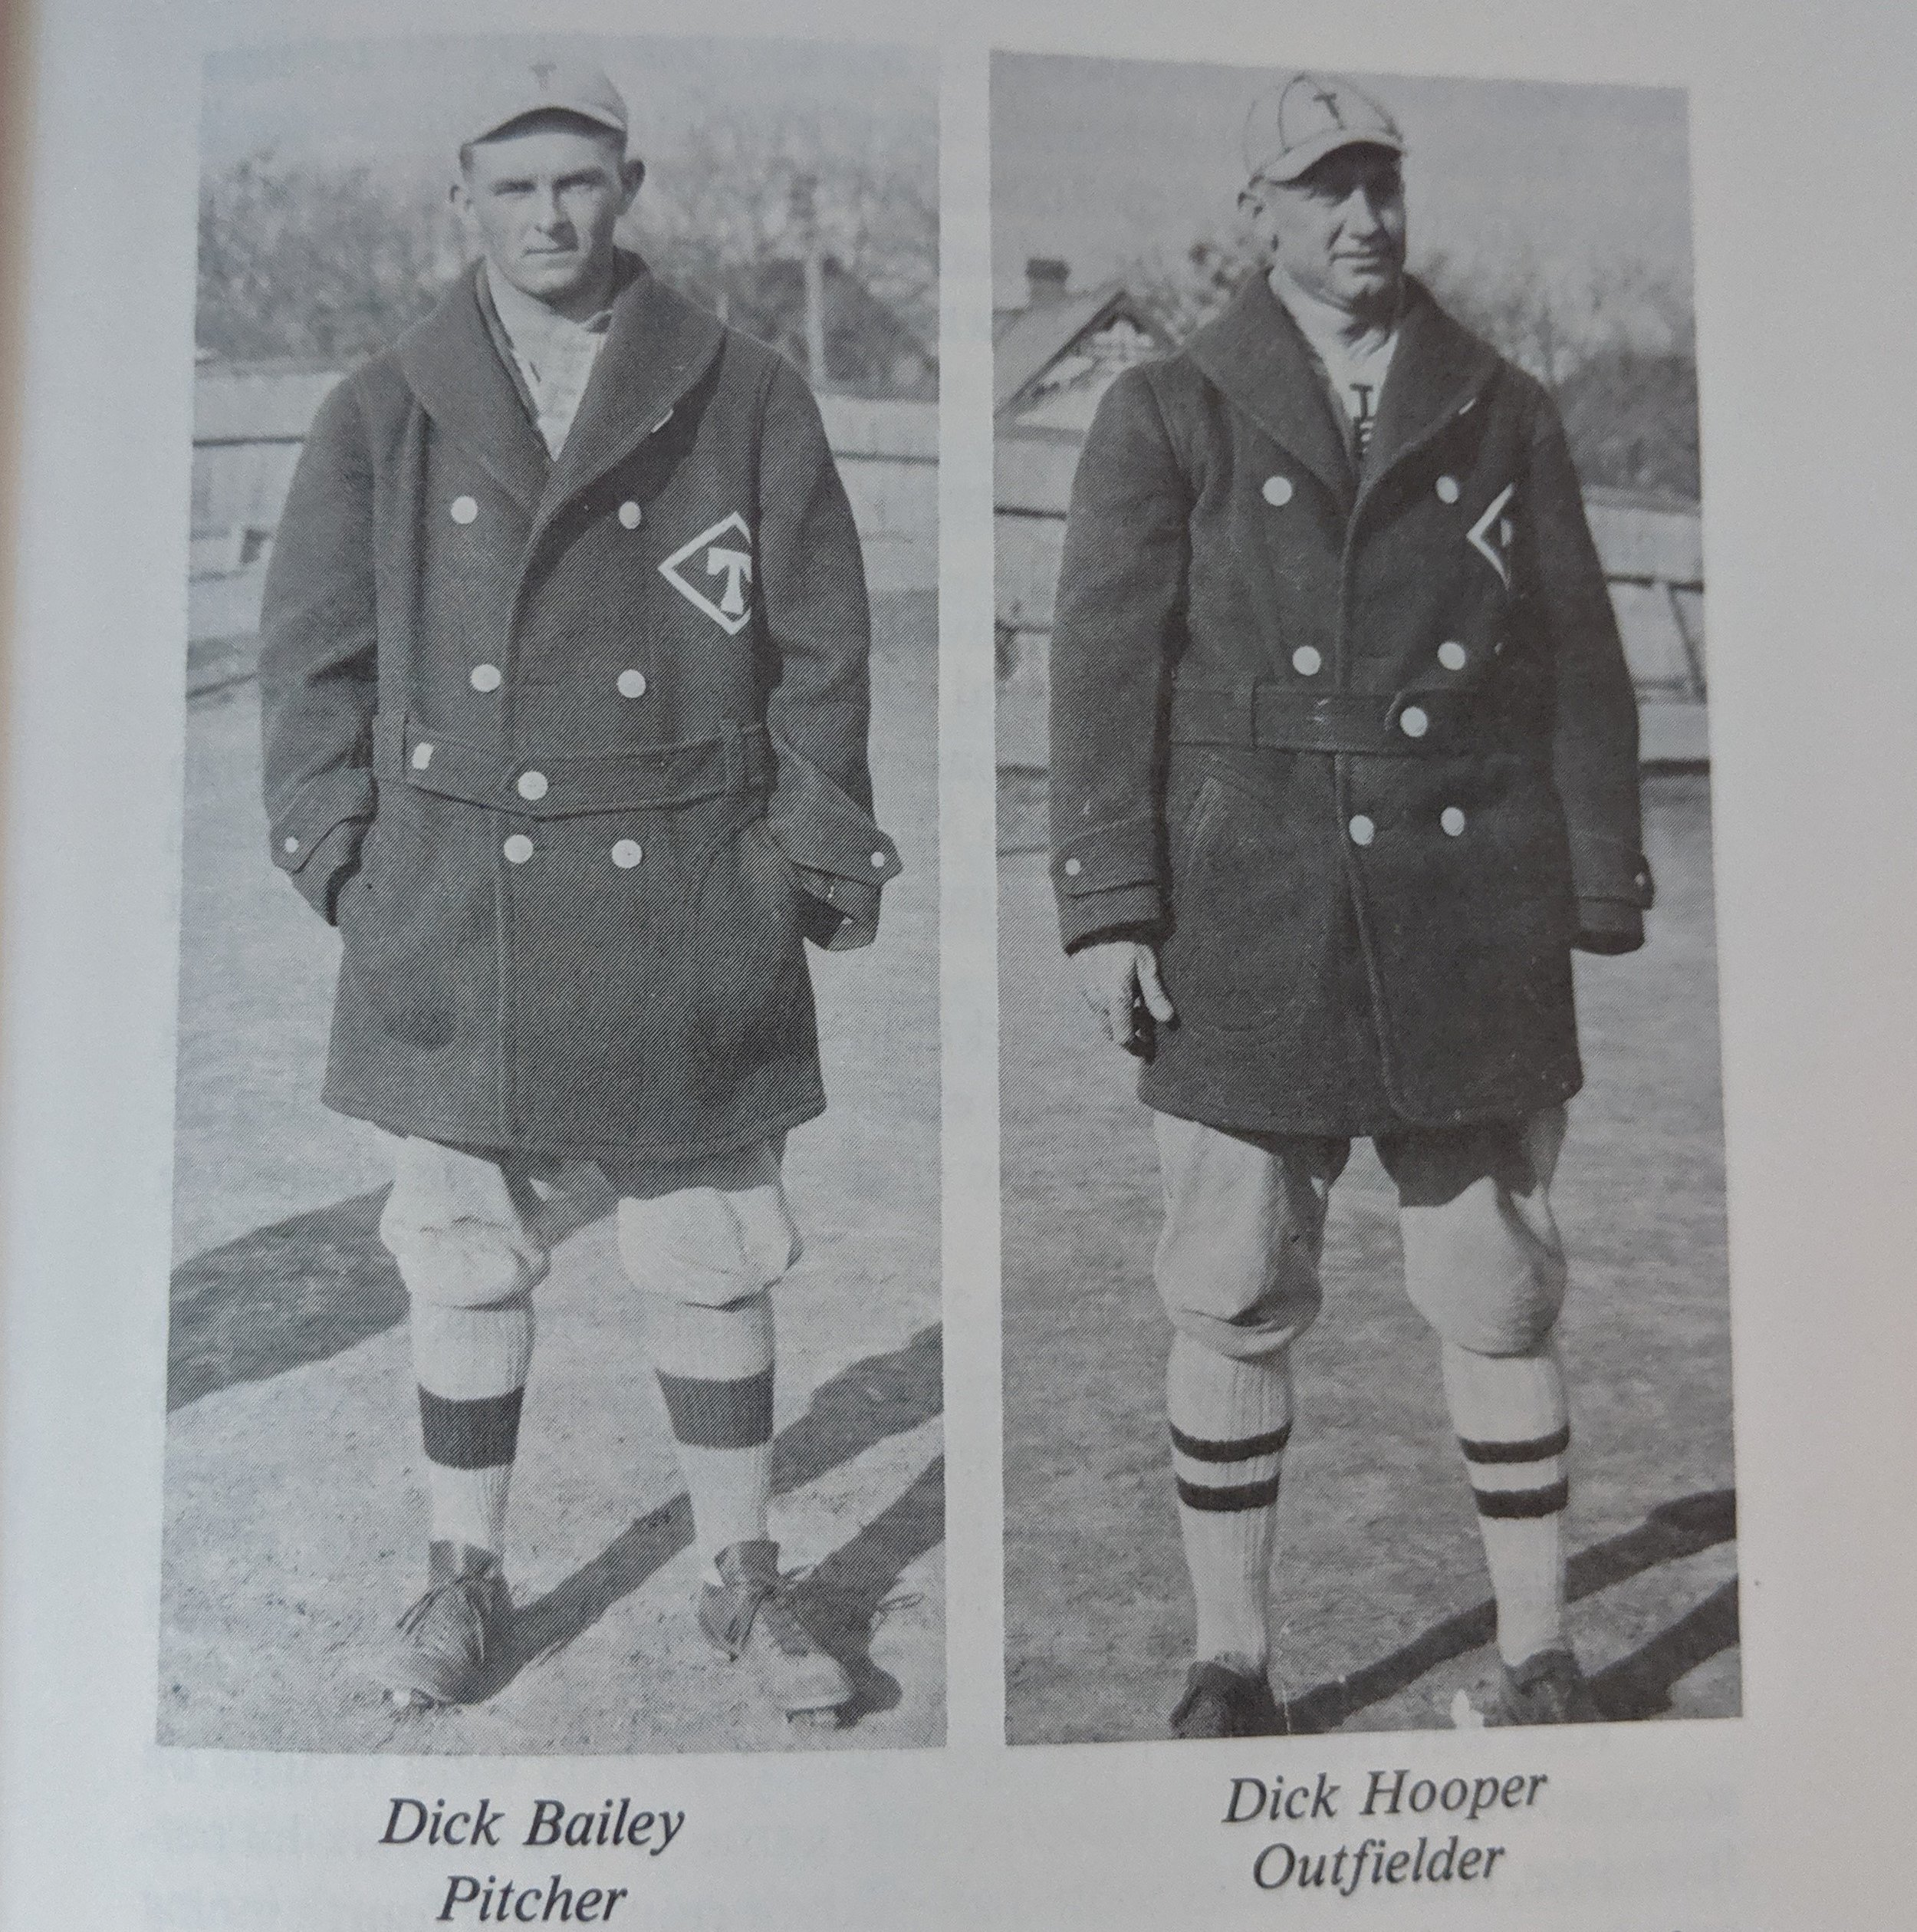 Dick Bailey and Dick Hooper is the one handed outfielder. -